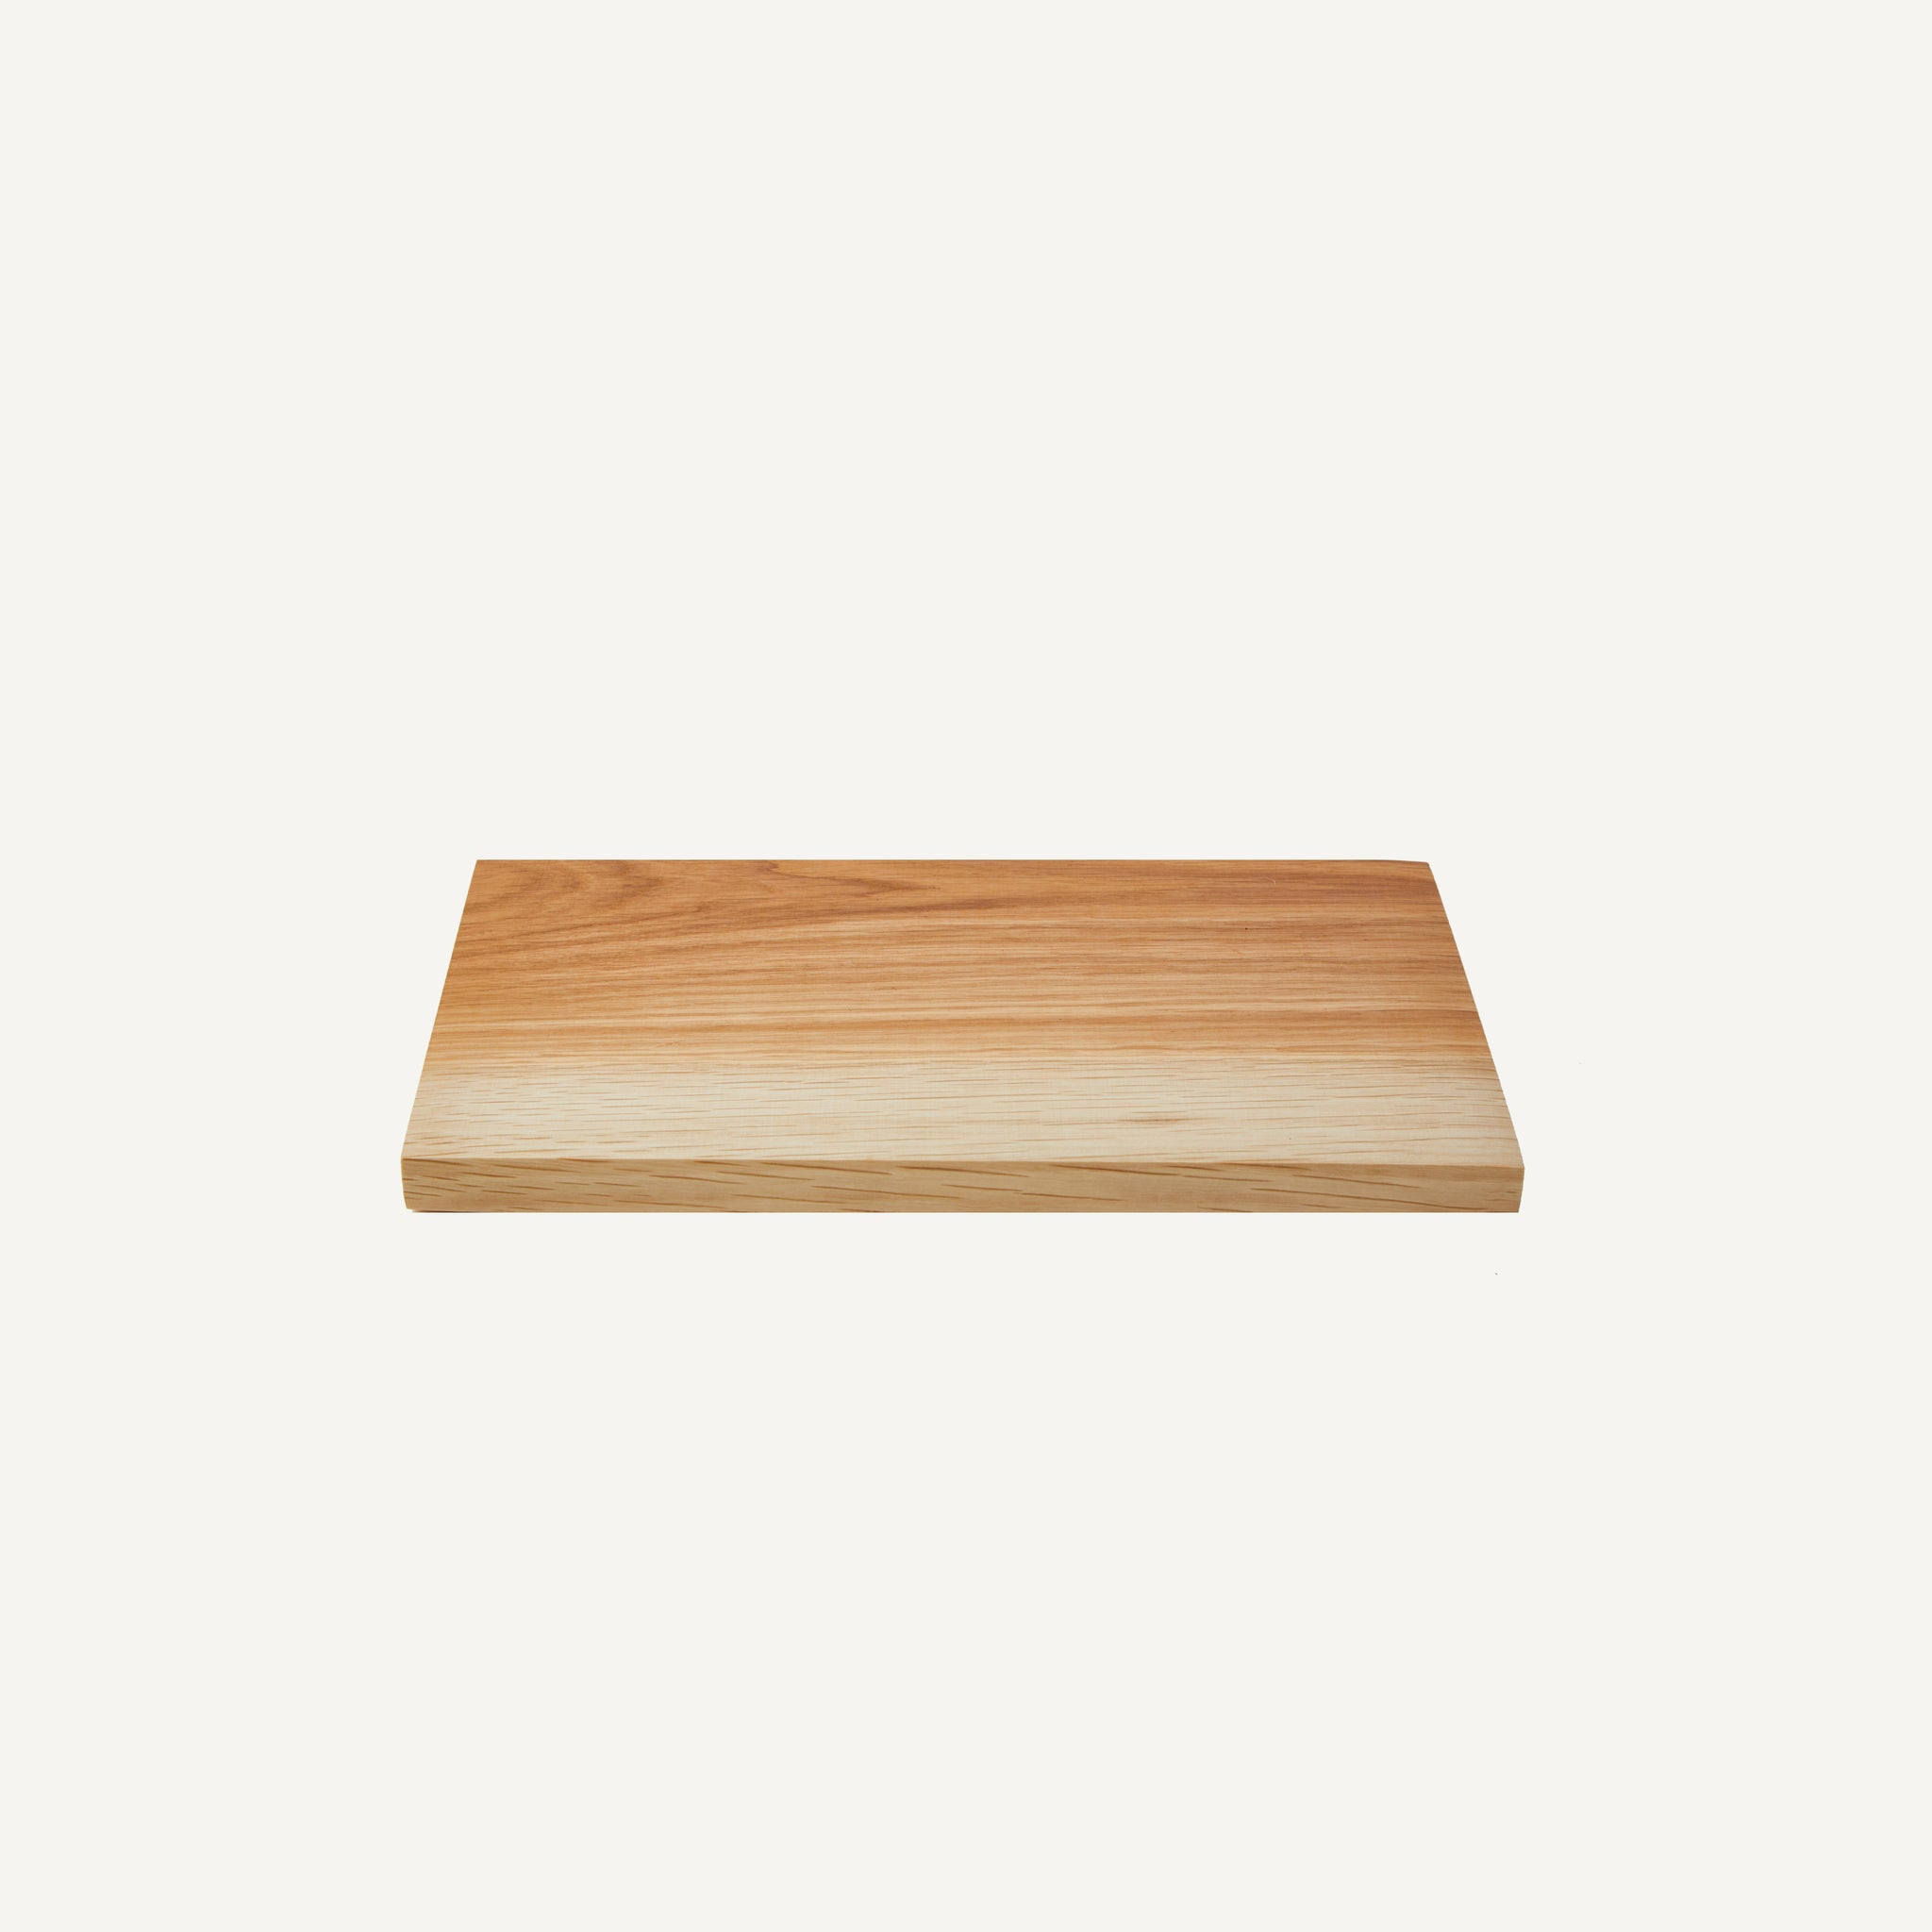 PLAIN GOODS OAK CUTTING BOARD